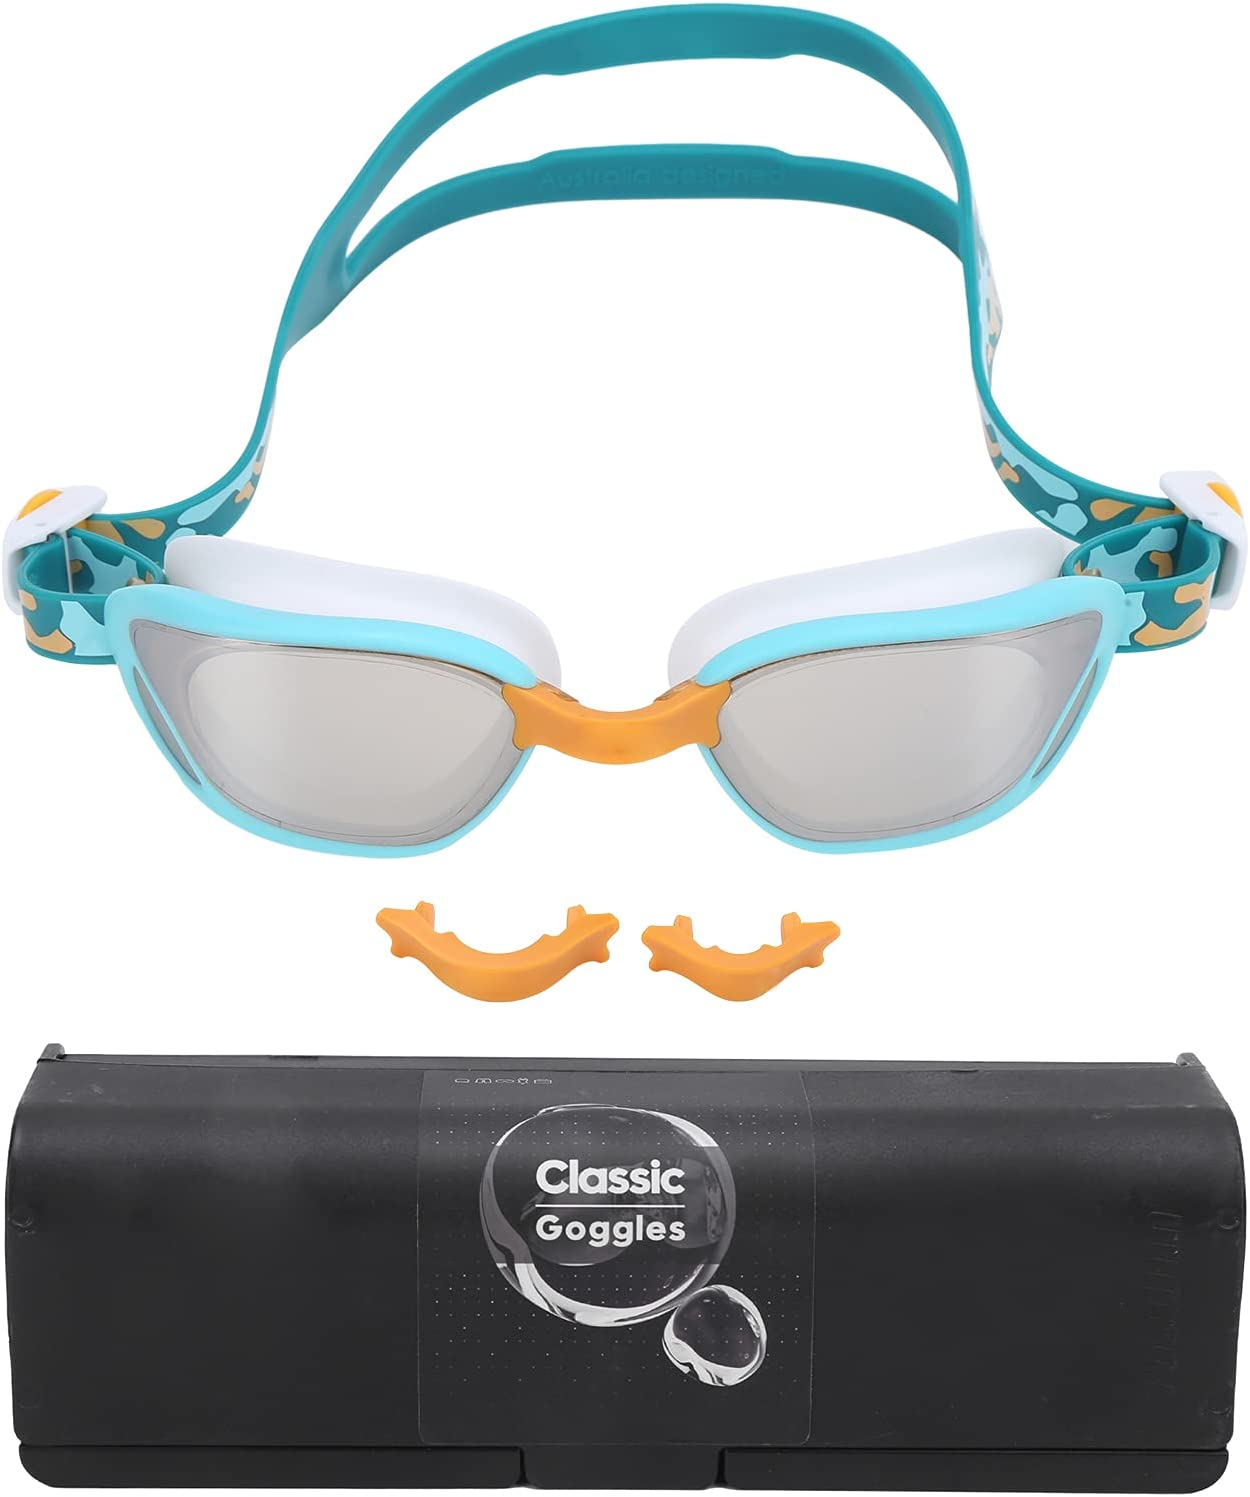 Dilwe Wide View Swimming Outlet Boston Mall sale feature Goggles Definition No Leaking High Ant